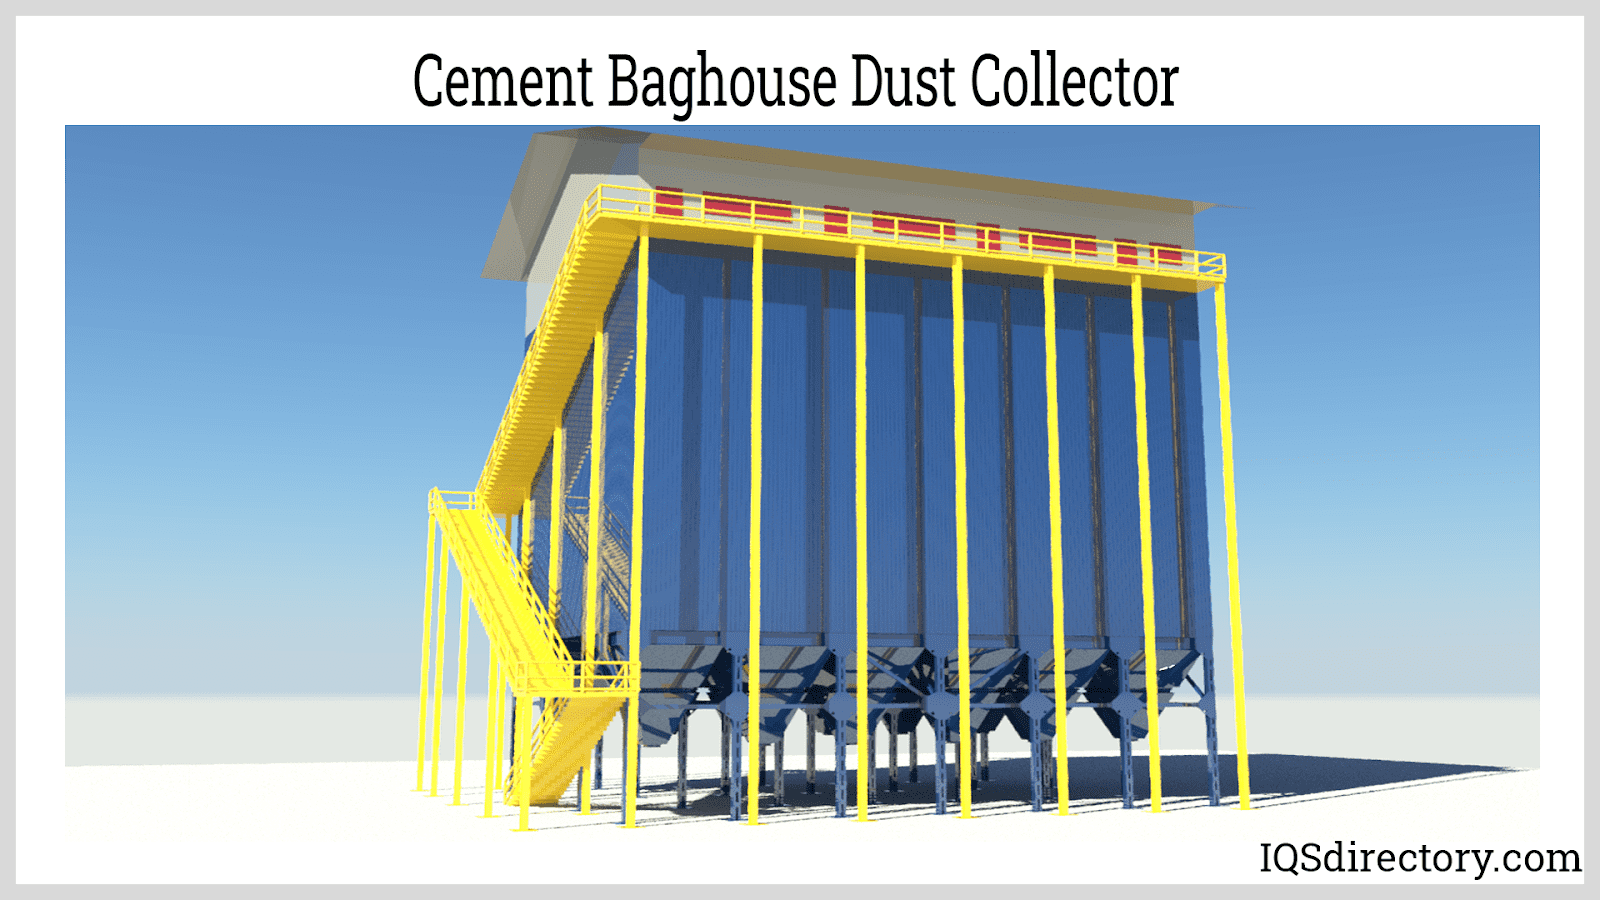 Cement Baghouse Dust Collector